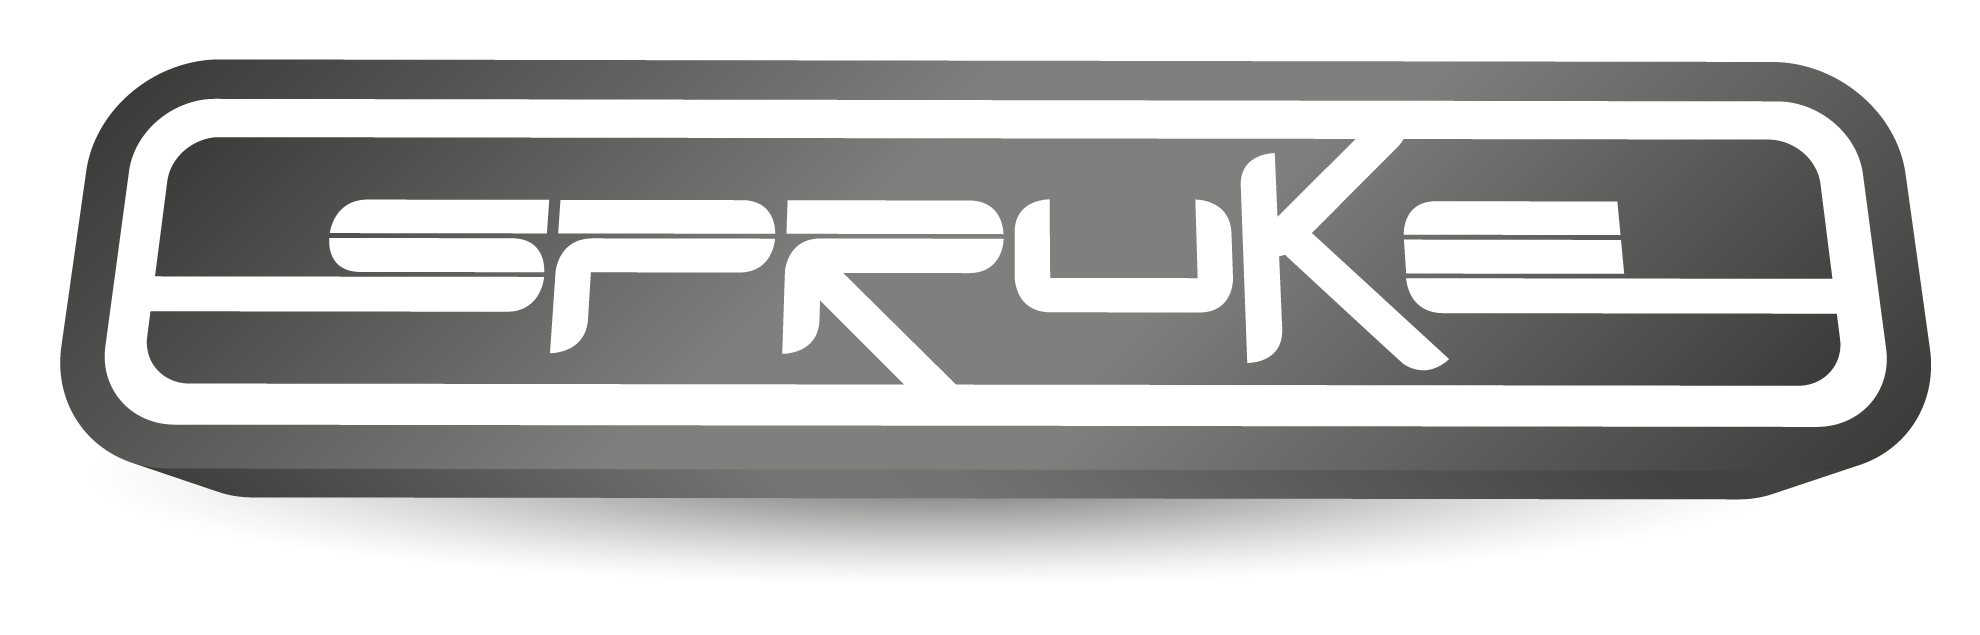 Spruke Logo revitalisation for twitch.tv 2016